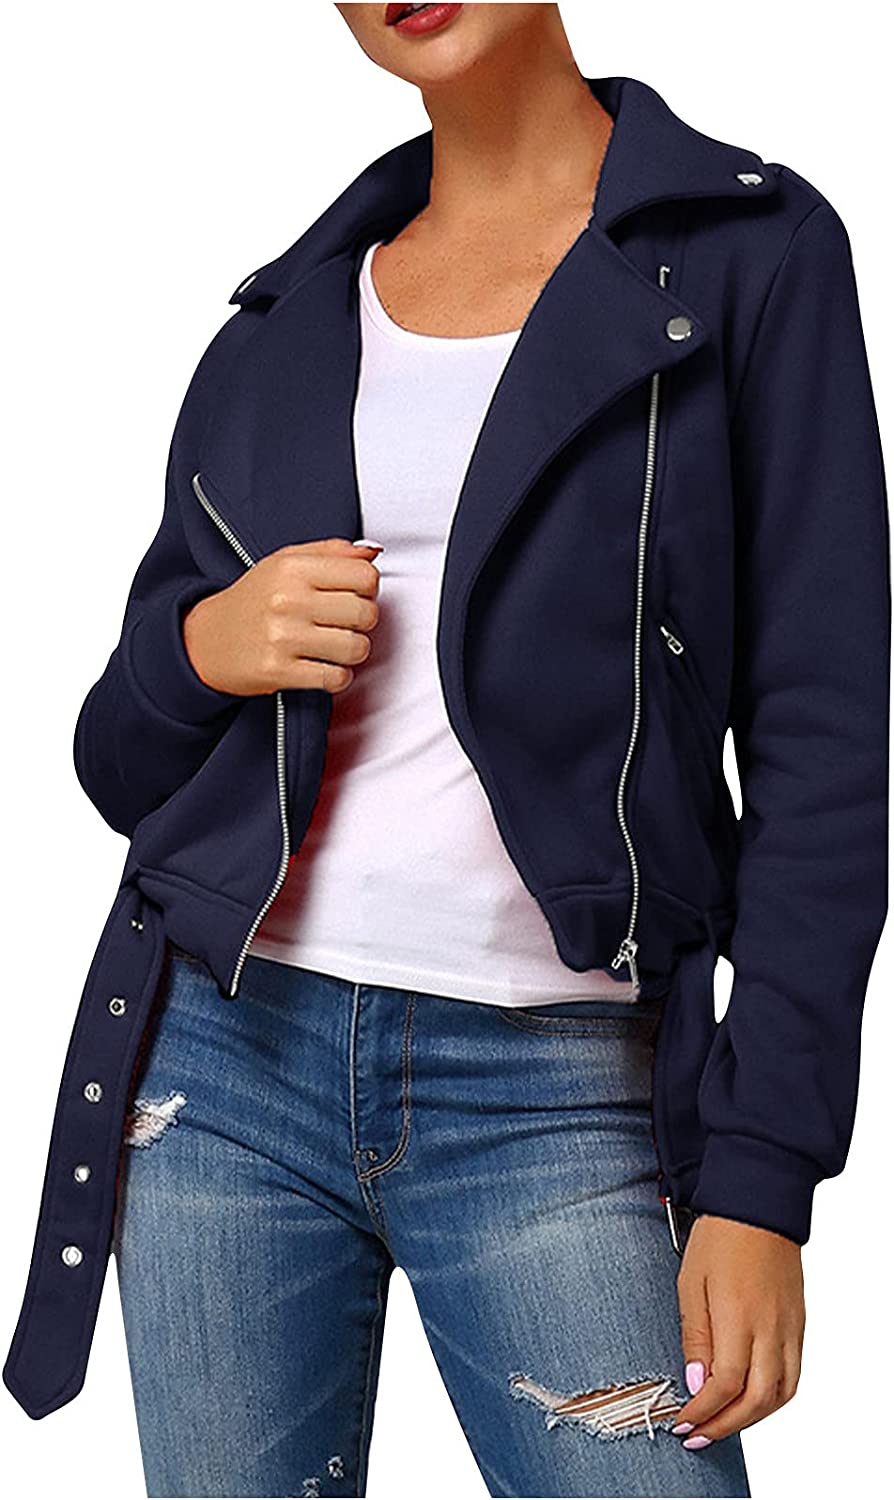 RFNIU Black Jacket Women Fall Fashion V-Neck Zip Up Solid Color Cardigan Coat With Pocket Casual Long Sleeve Tops